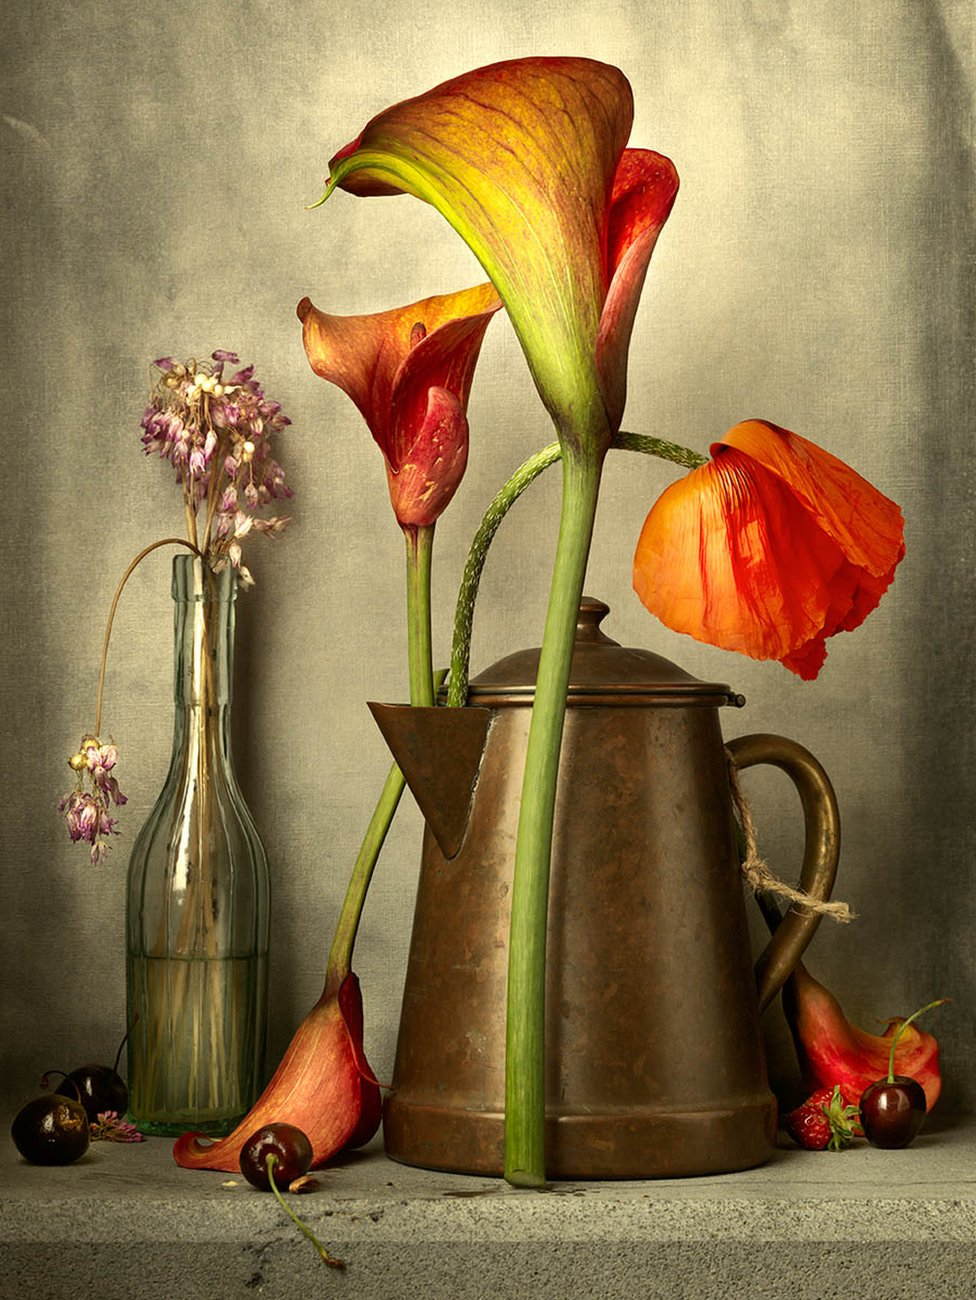 A bottle and a metal jug containing flowers, surrounded by cherries